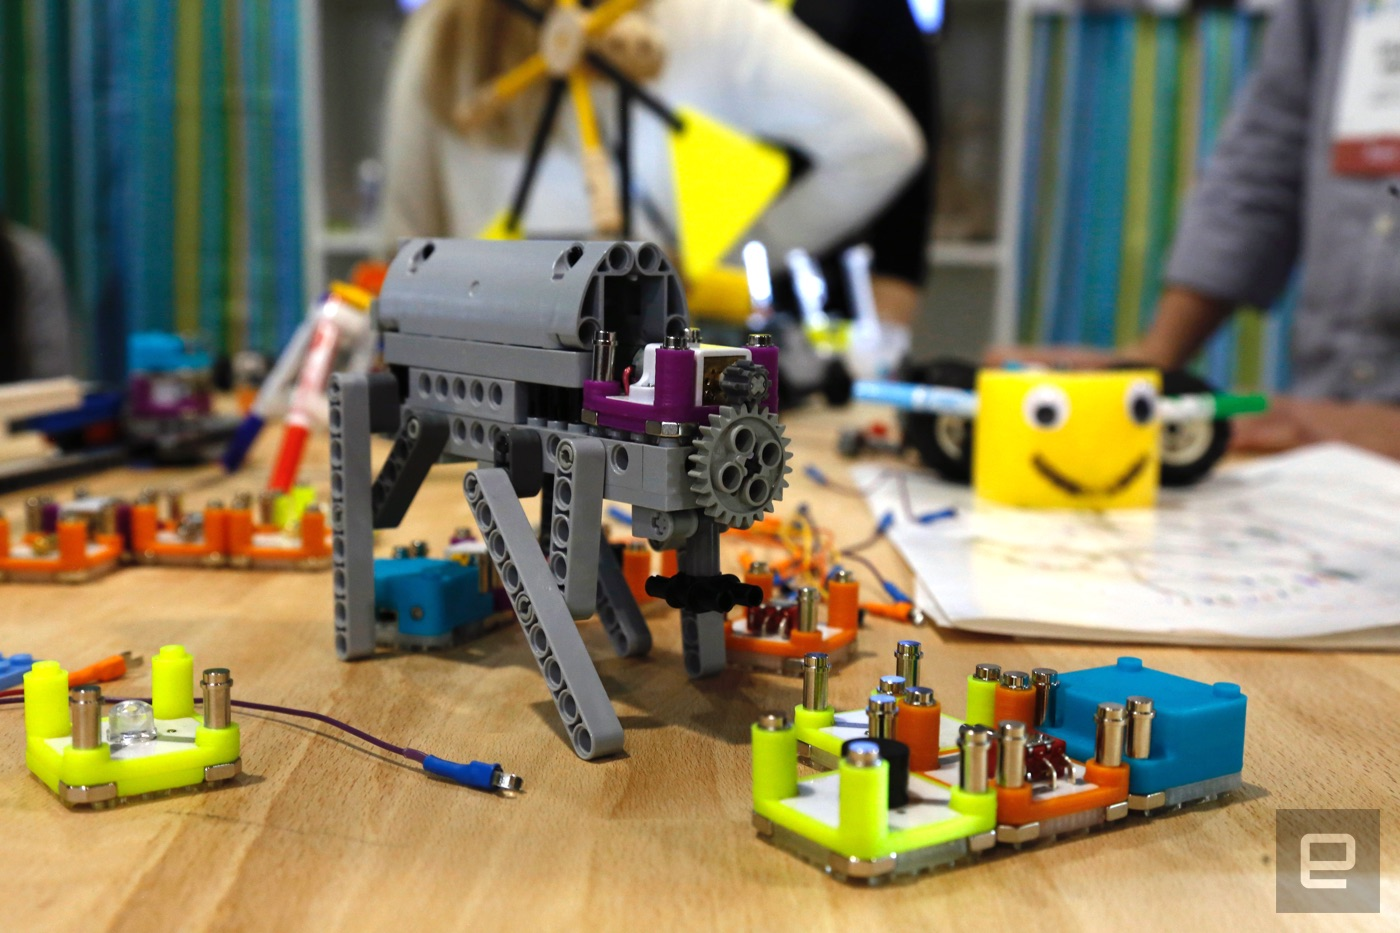 Circuit Cubes Make Engineering Basics A Snap For Kids Littlebits Kits Teach Beginning Circuitry To Discount Theres No Shortage Of Websites And Tutorial Videos Hardware Meant Them The Fundamentals